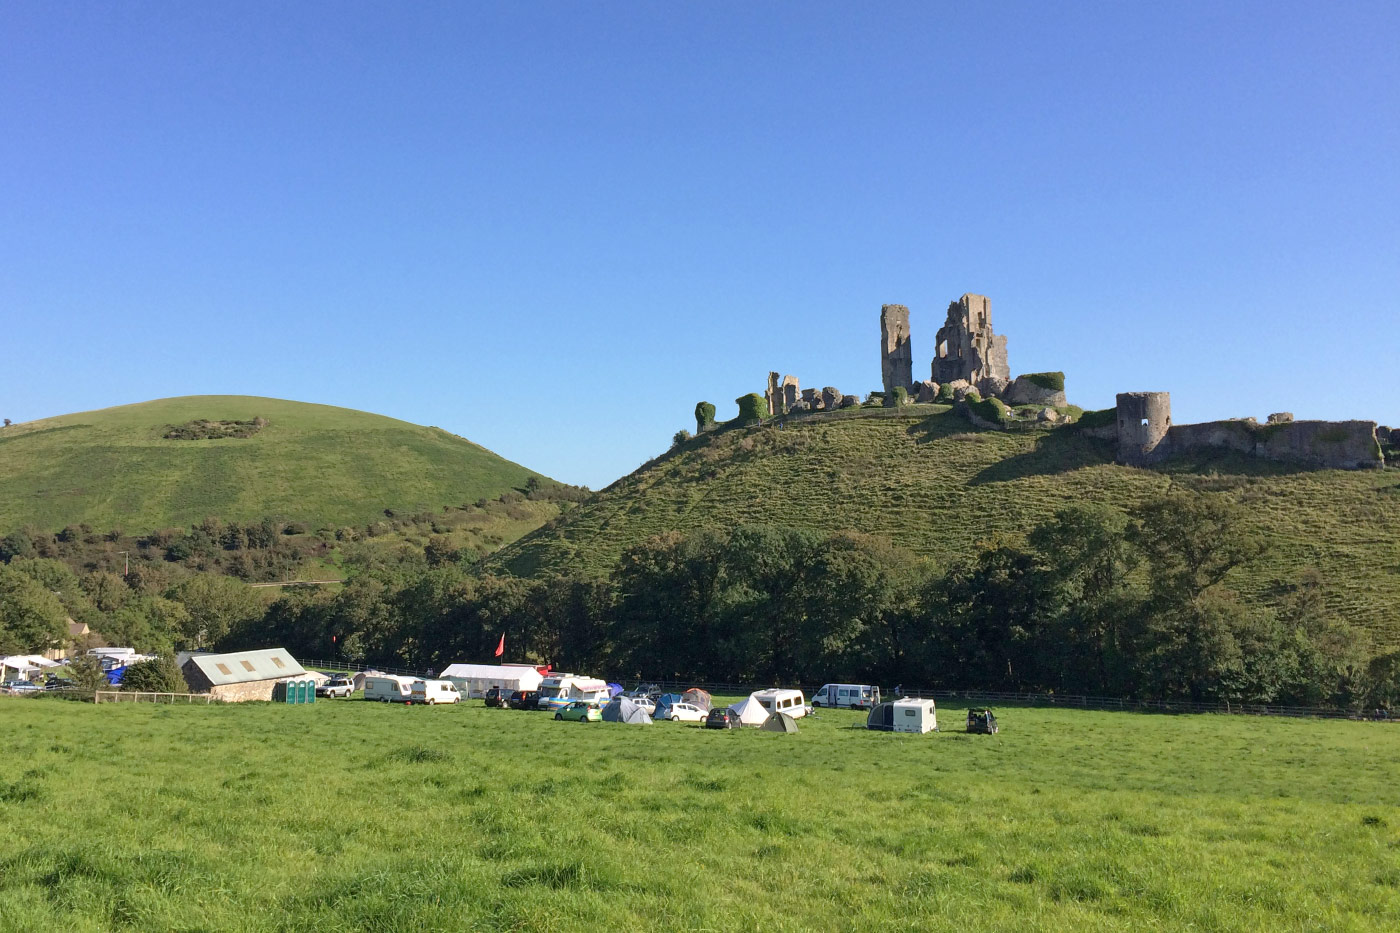 Campers at Corfe